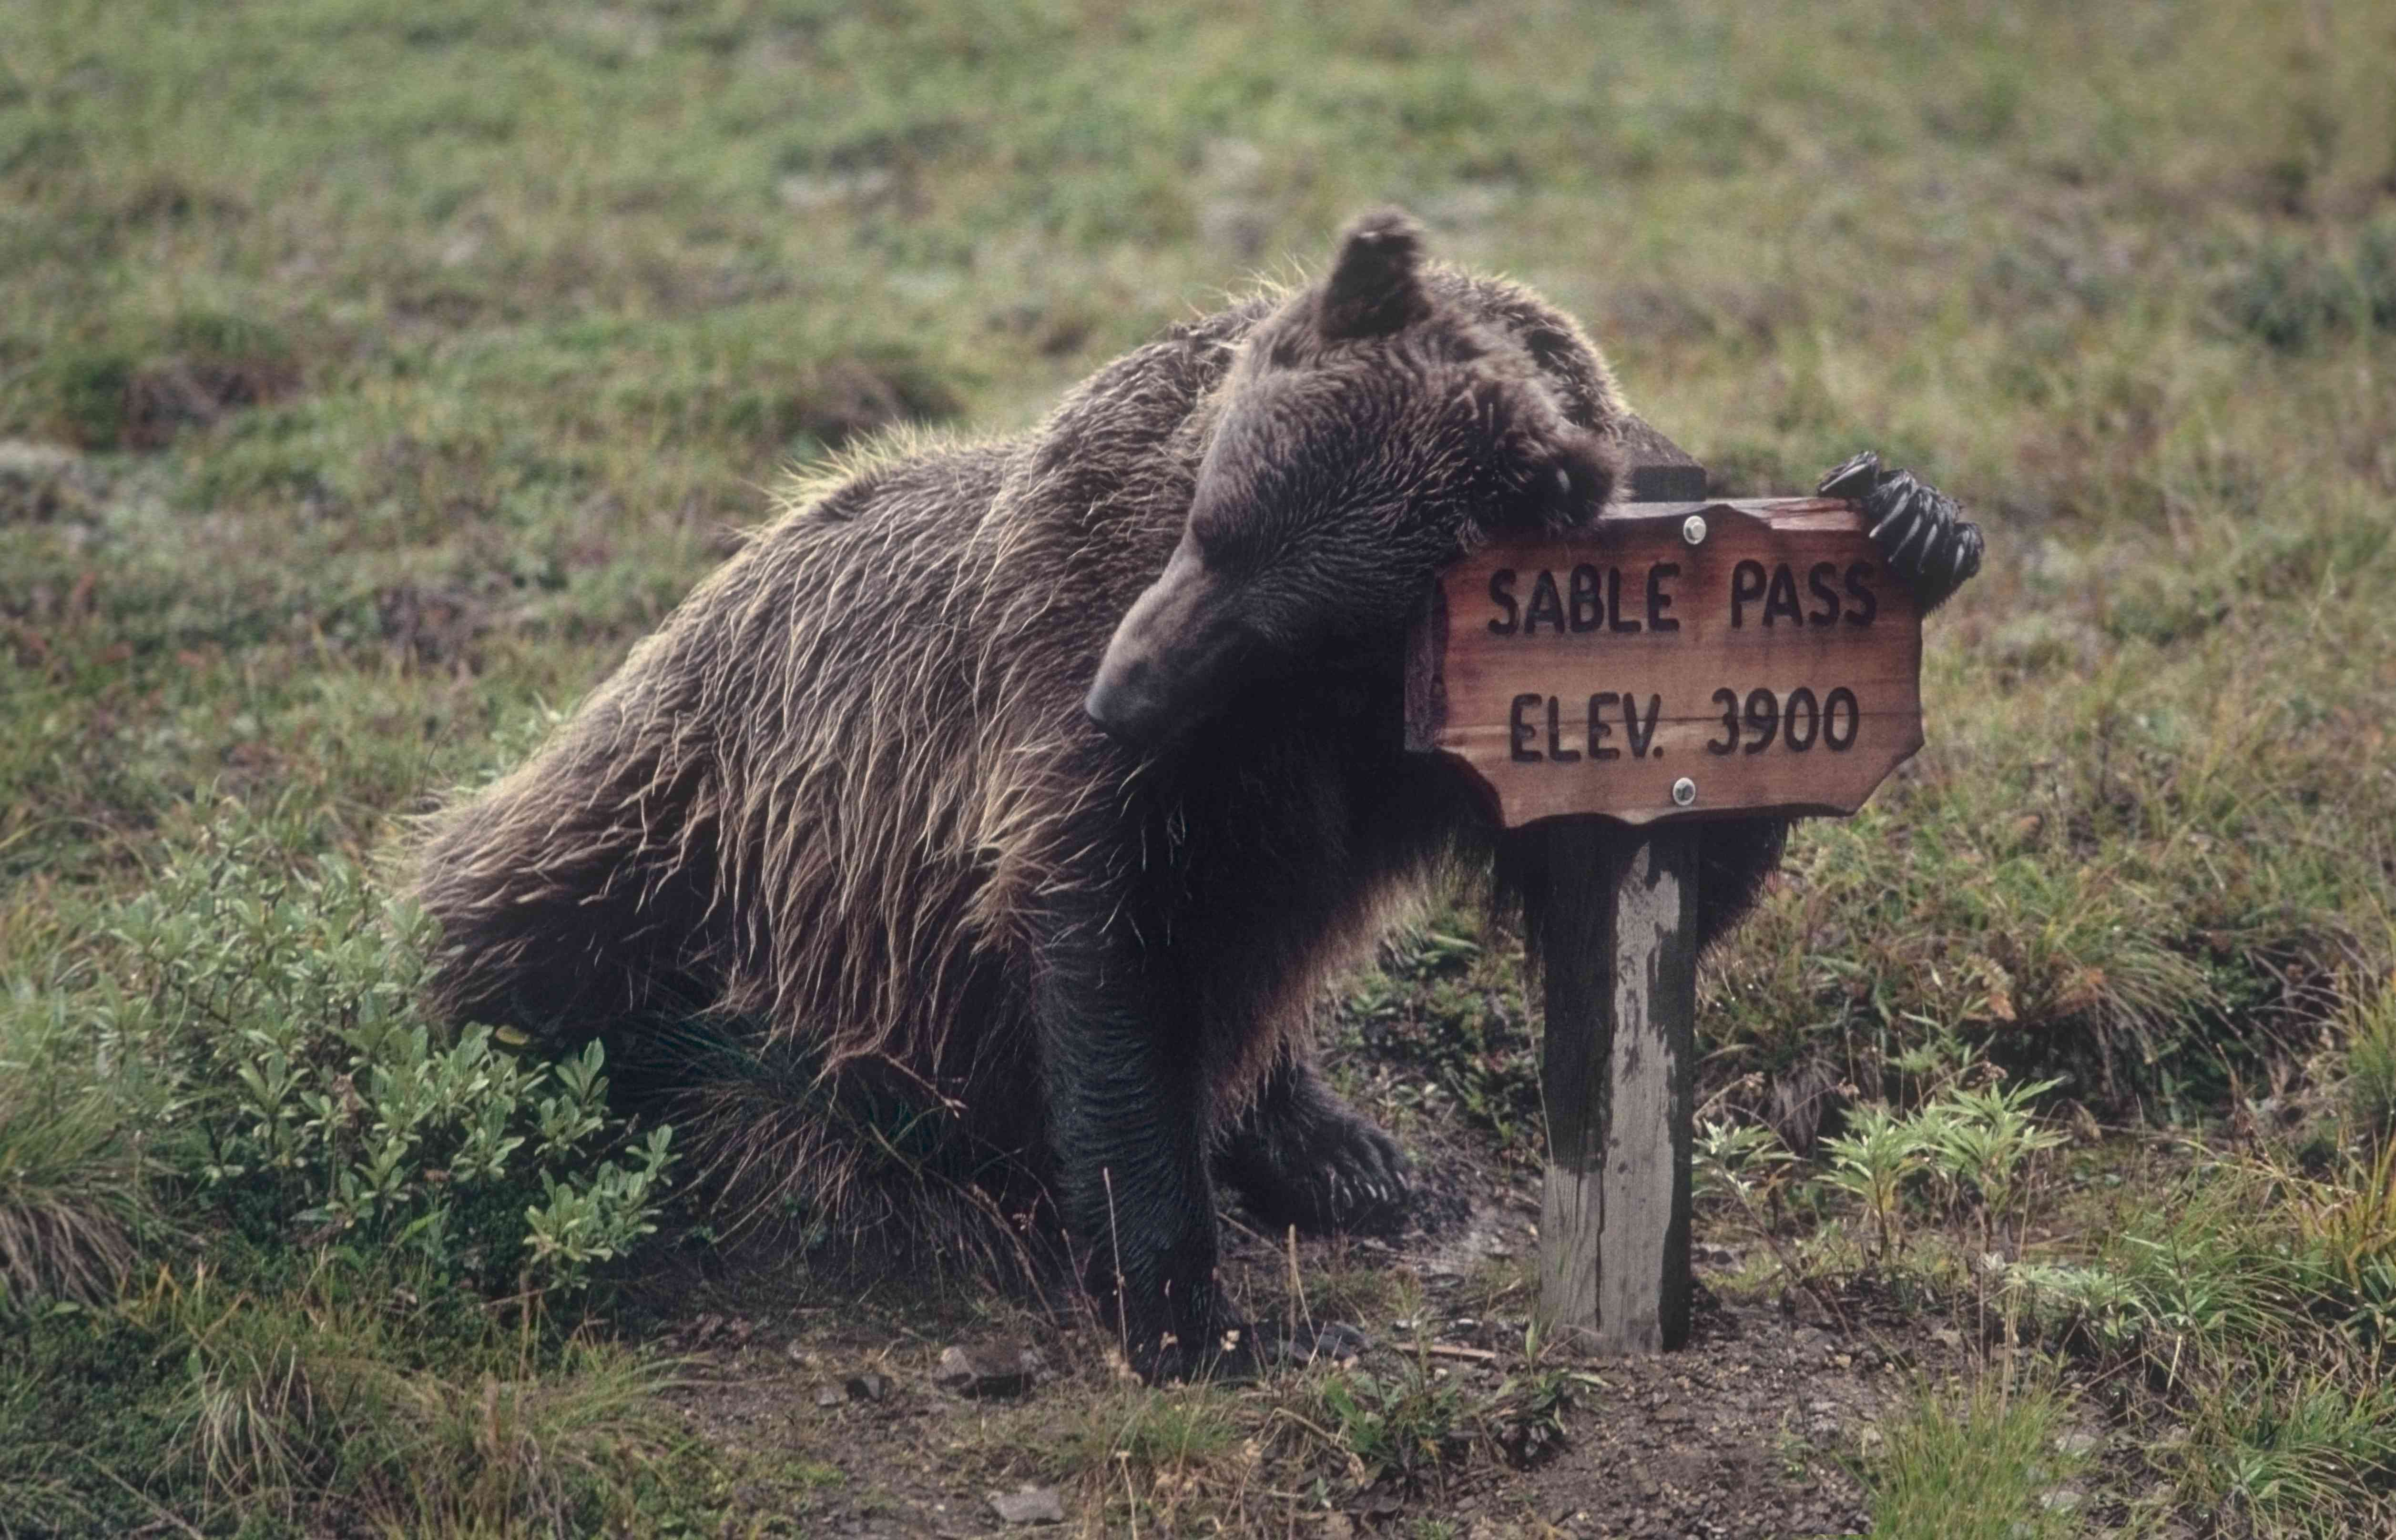 Grizzly & Sable Pass sign.